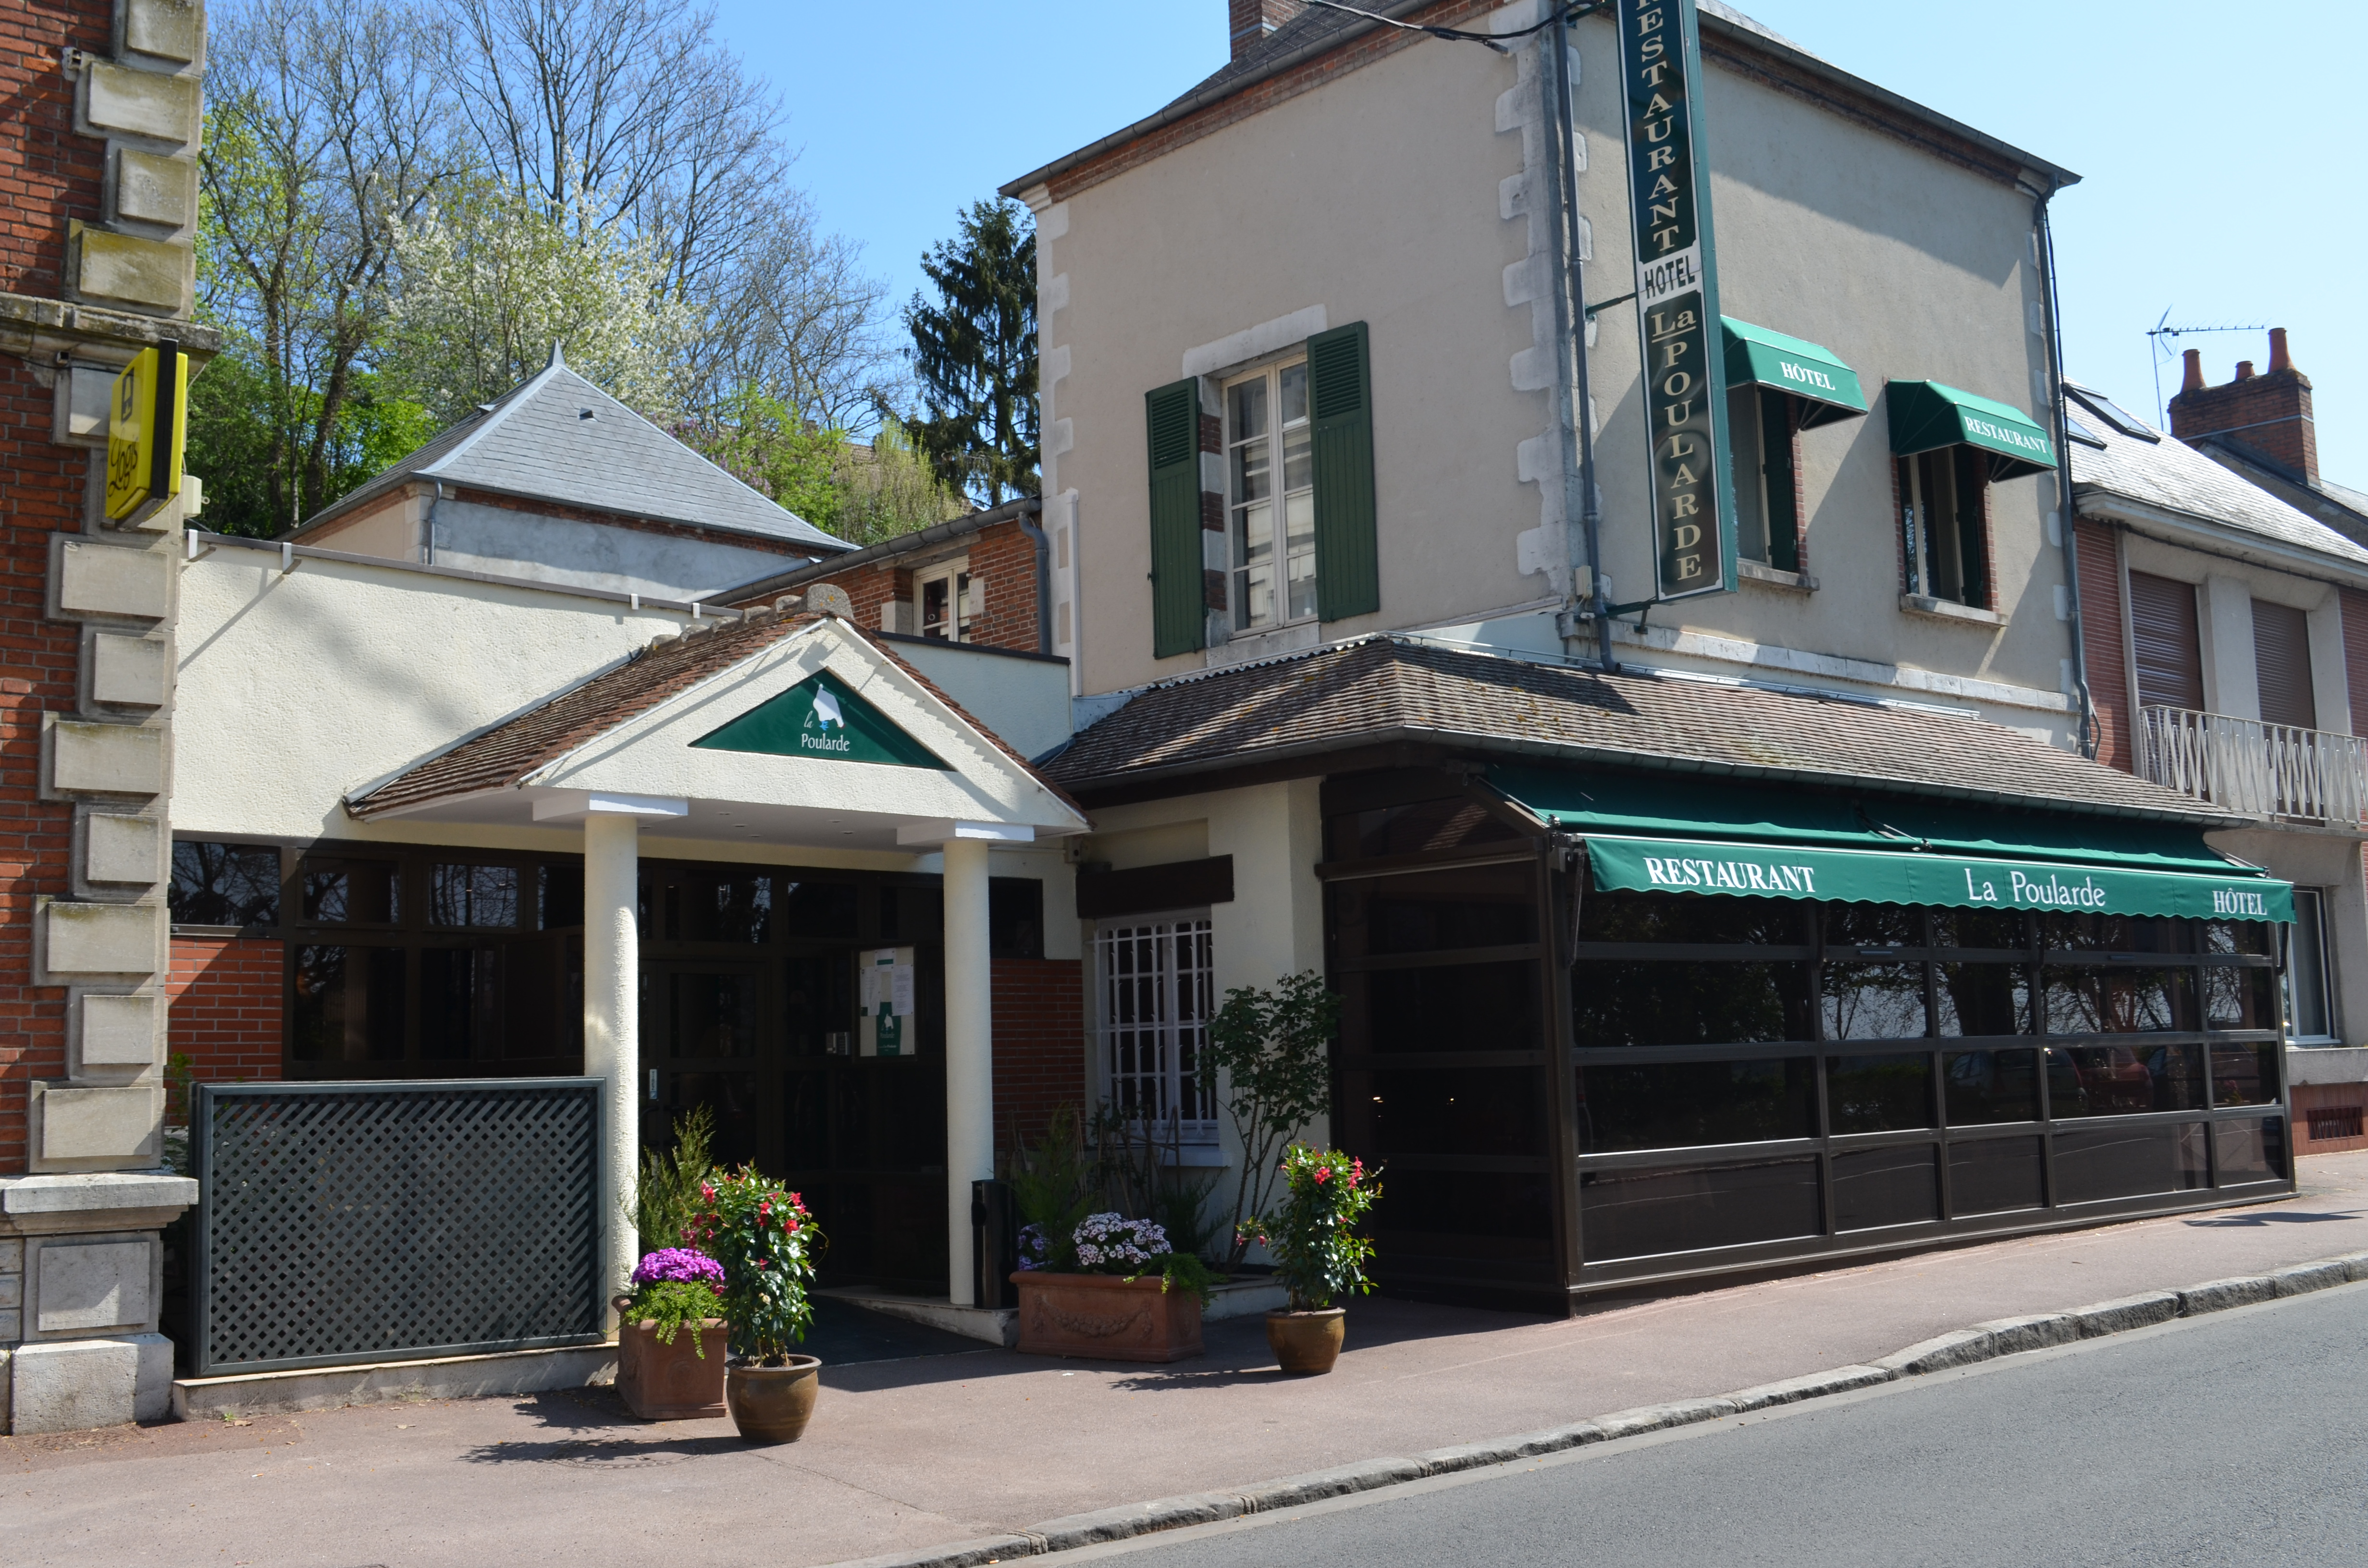 Office de tourisme de gien la poularde - Office de tourisme de gien ...